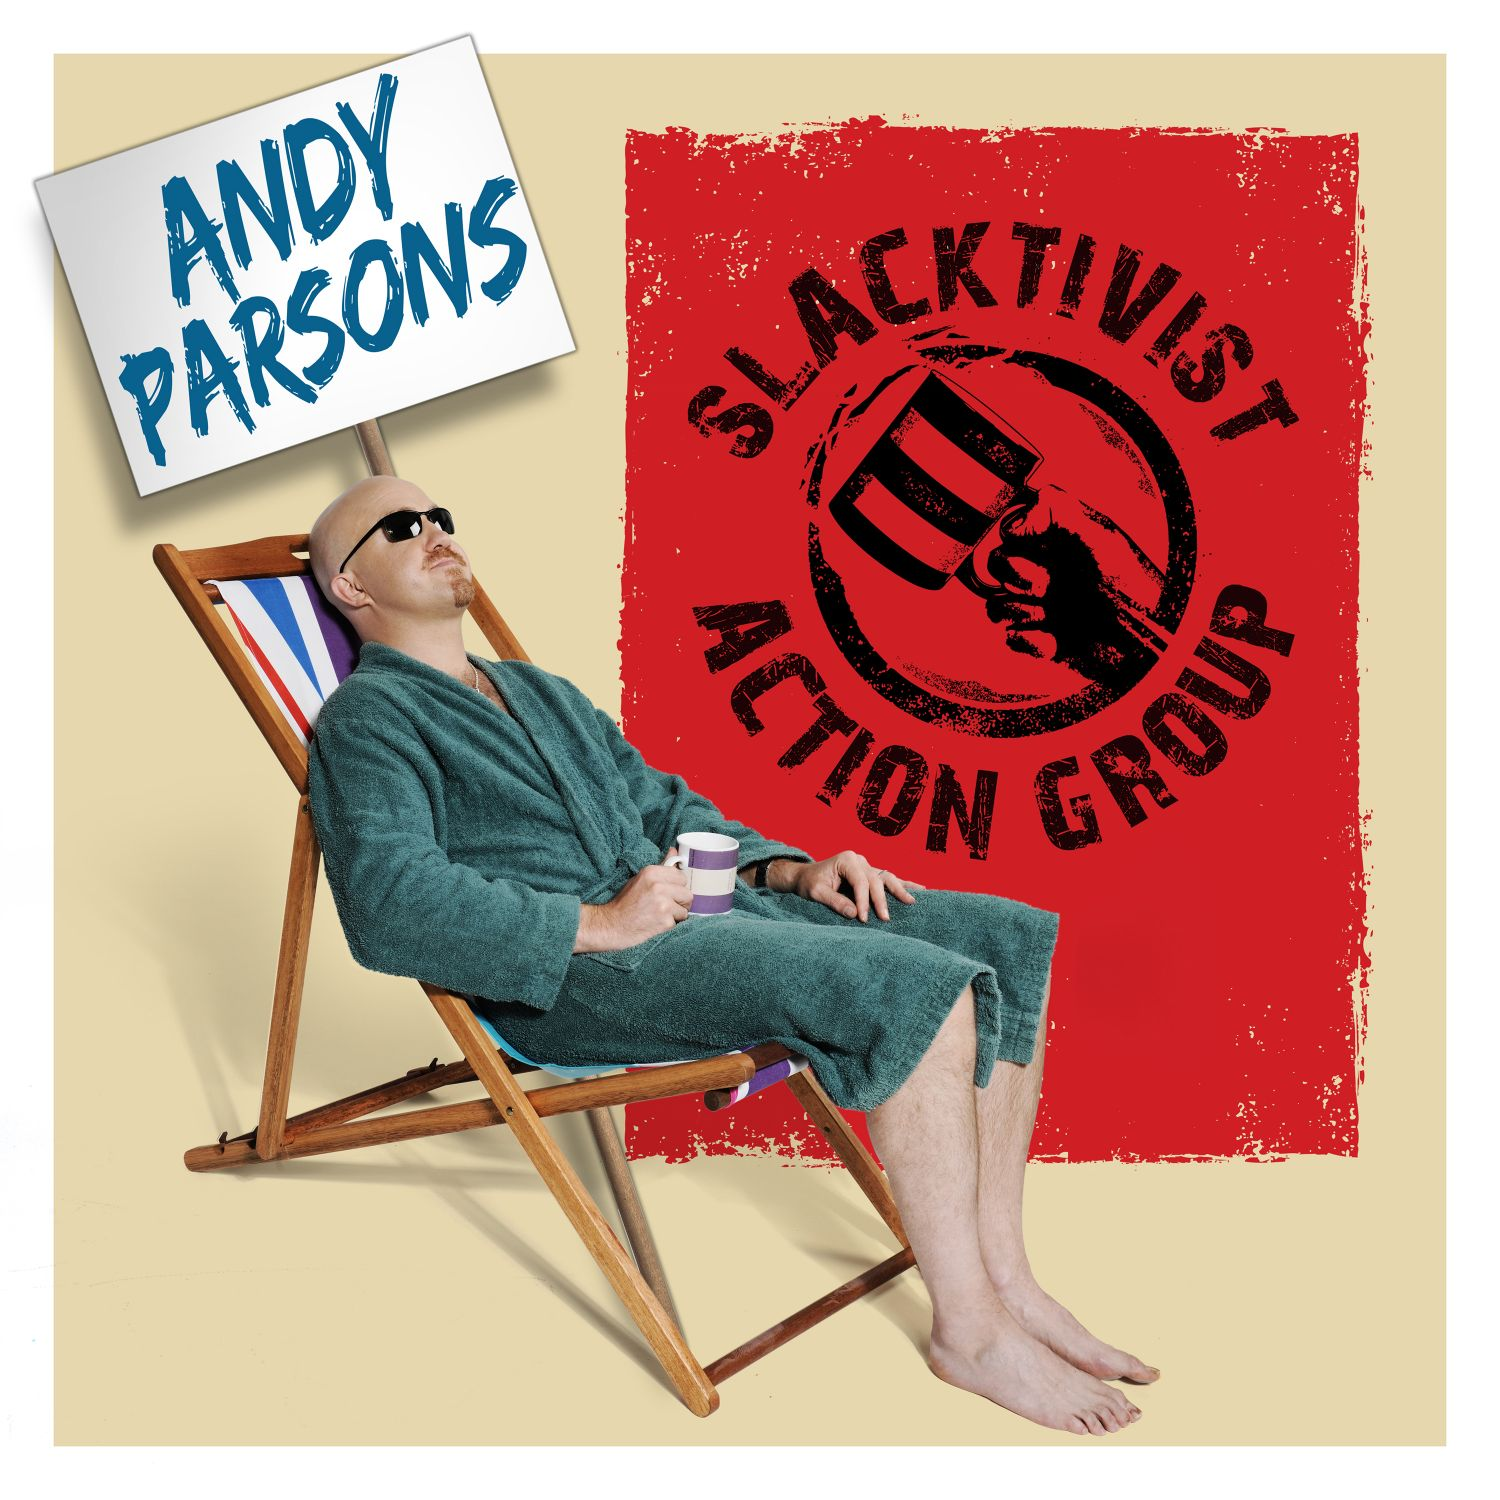 Andy Parsons: Slacktivist Action Group